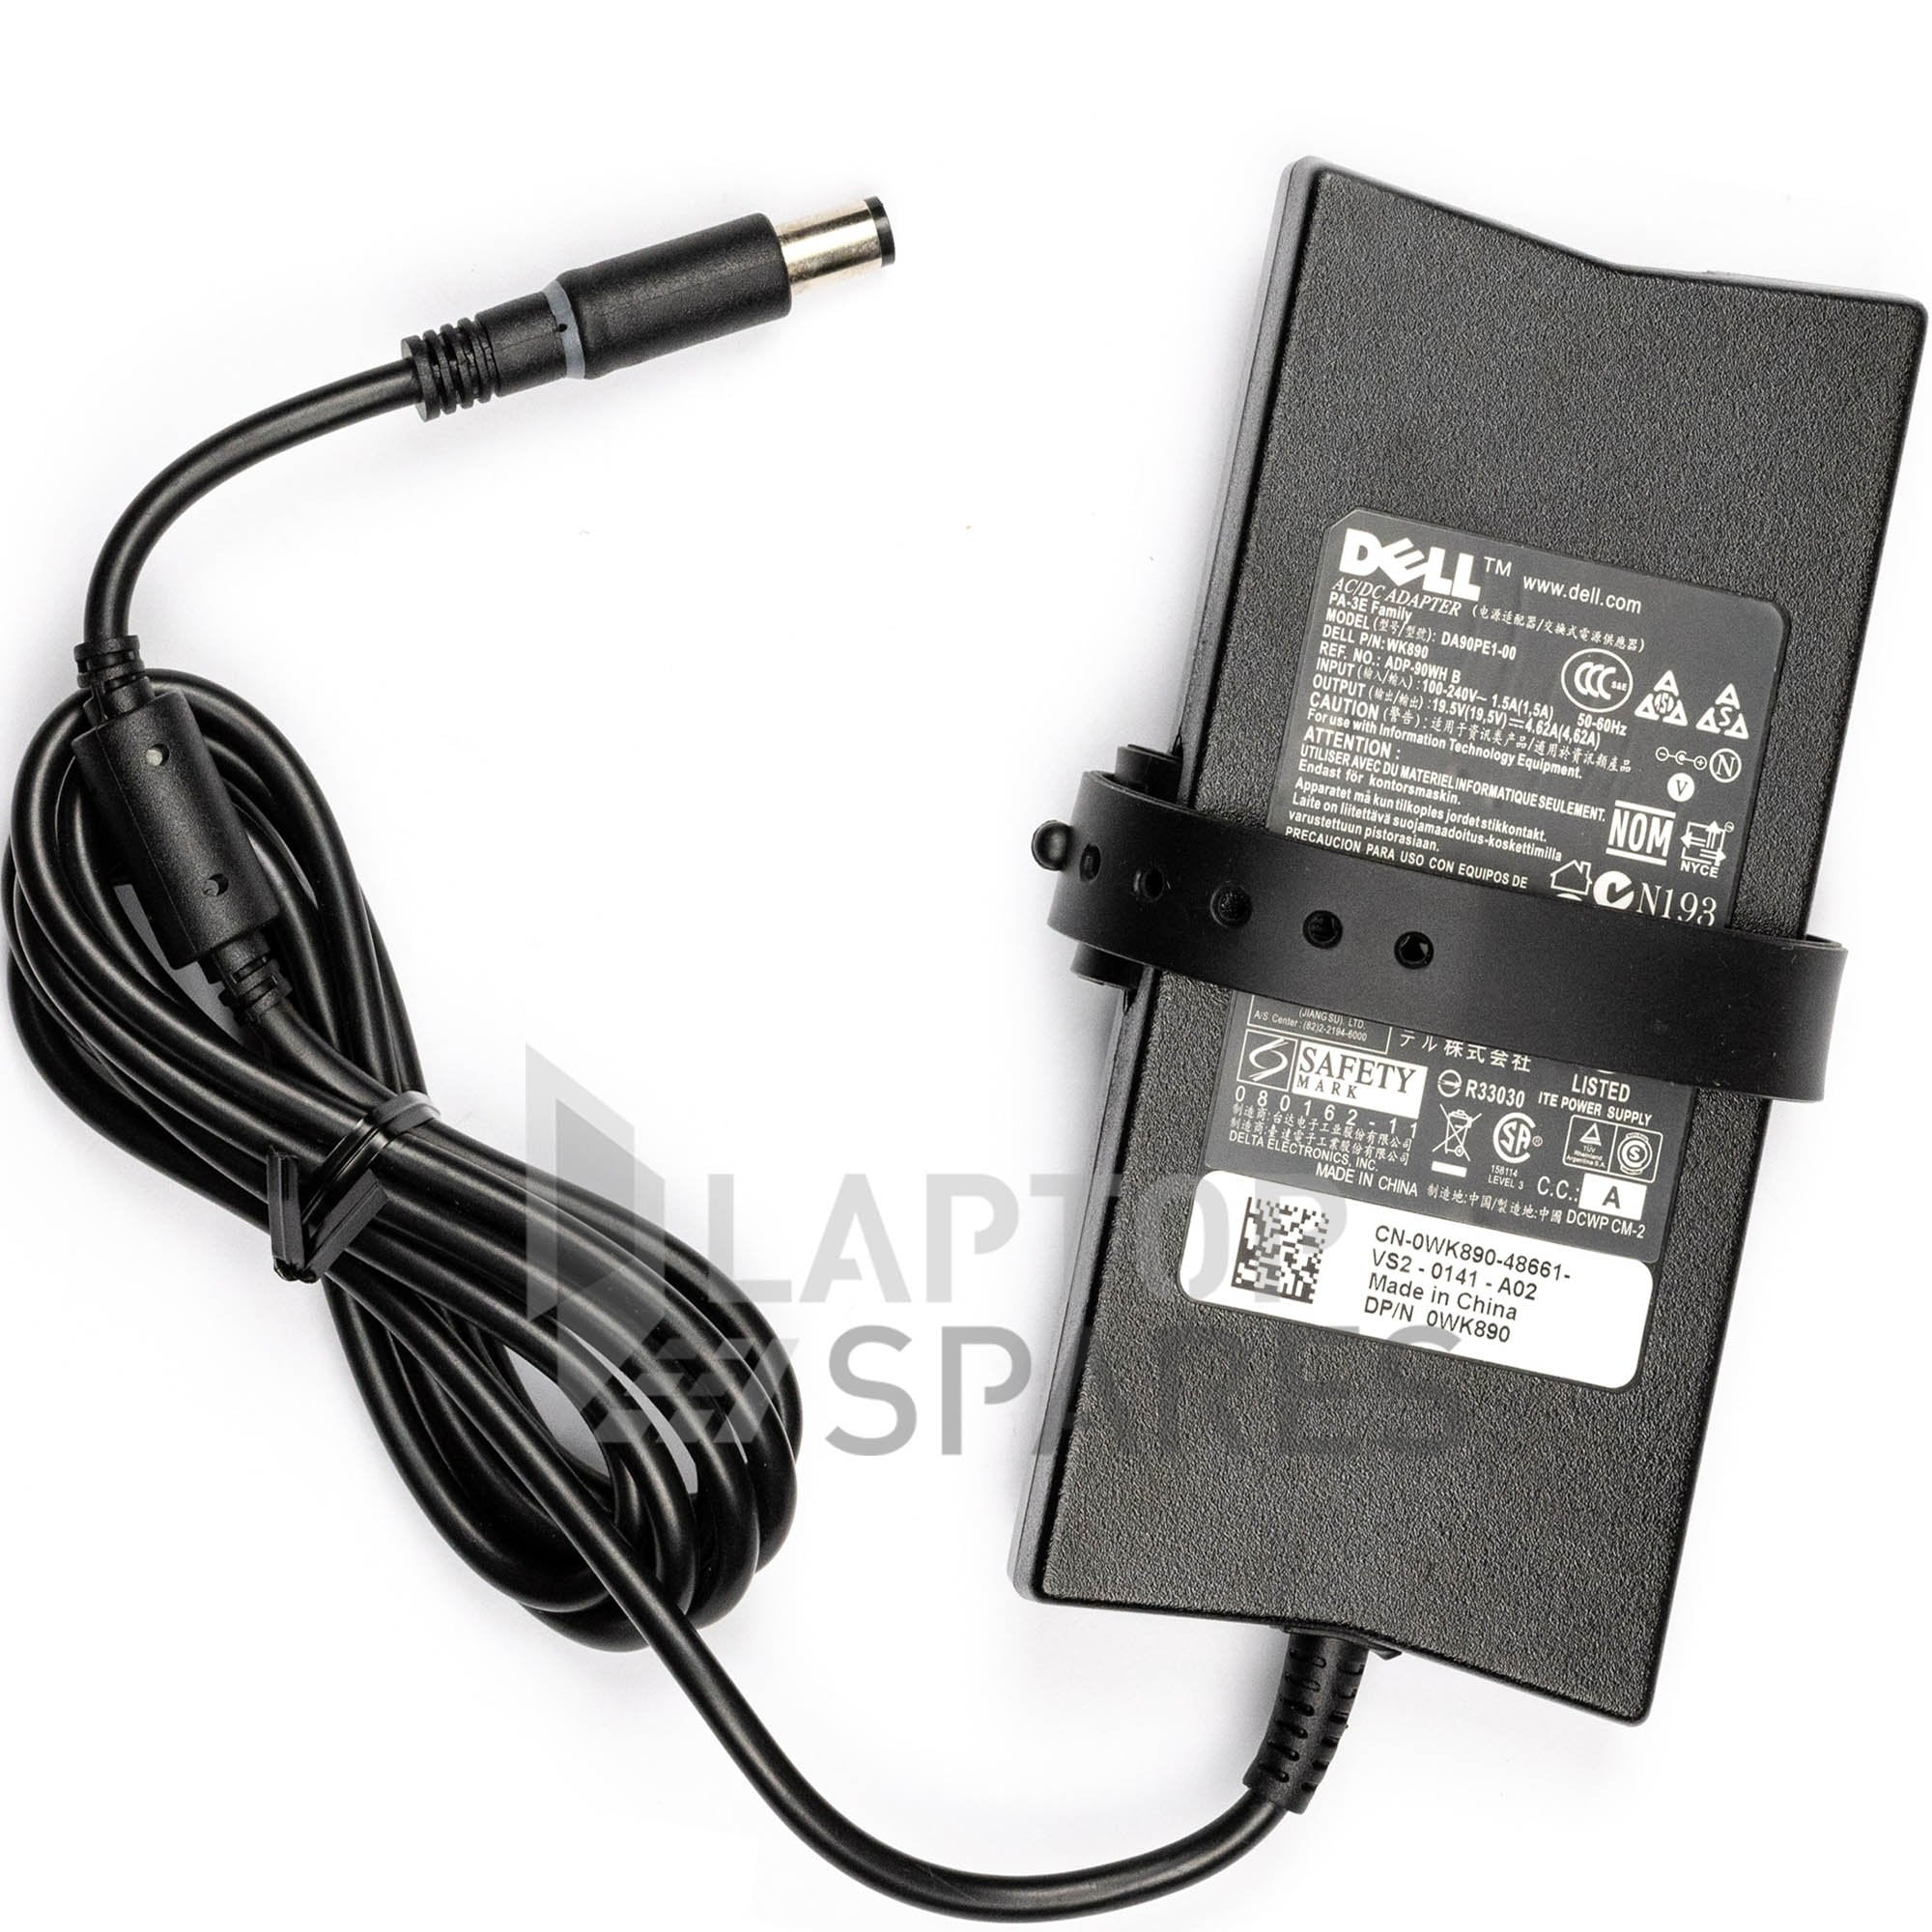 Dell Vostro 1400 1440 1450 Laptop Slim AC Adapter Charger